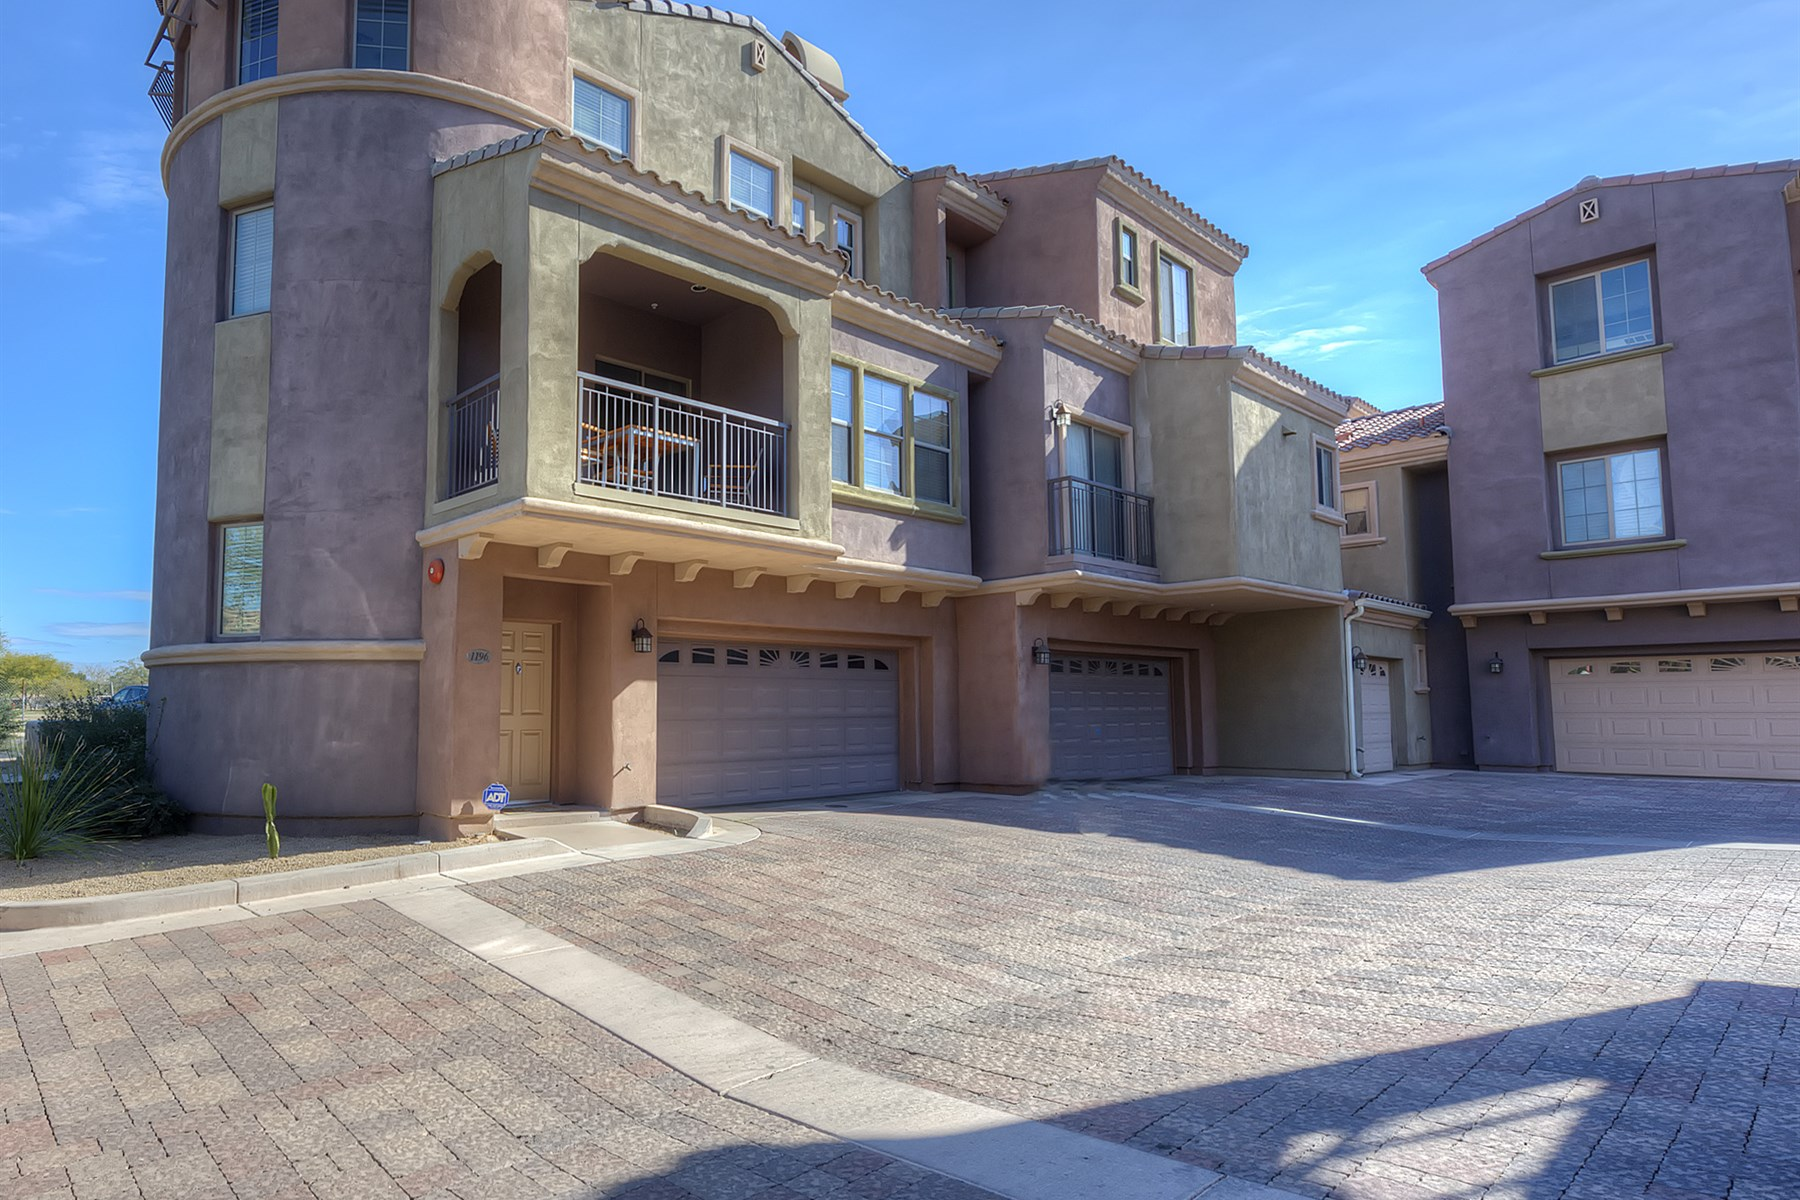 タウンハウス のために 売買 アット 3-Level Townhome in Fabulous North Phoenix Community of The Villages at Aviano 3935 E Rough Rider Rd #1196 Phoenix, アリゾナ 85050 アメリカ合衆国